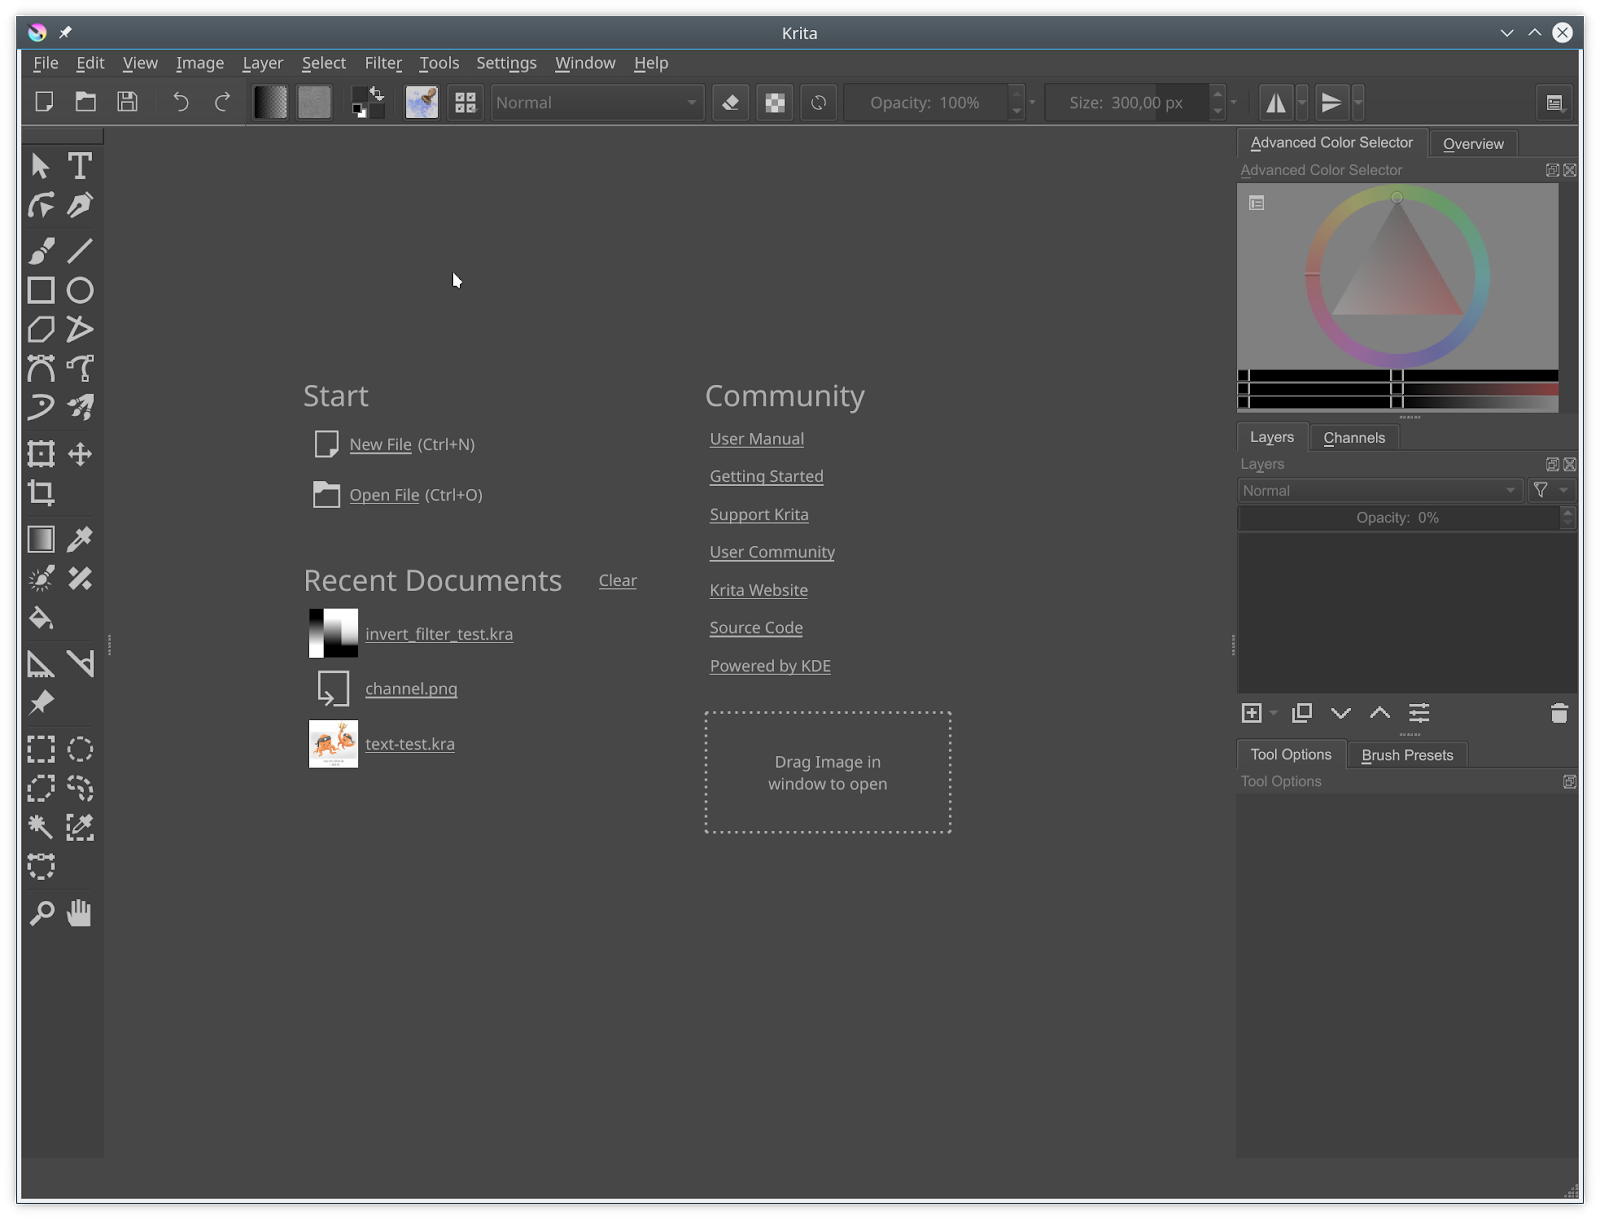 Krita 4 1 3 is Available to Install via PPA for Ubuntu 18 04